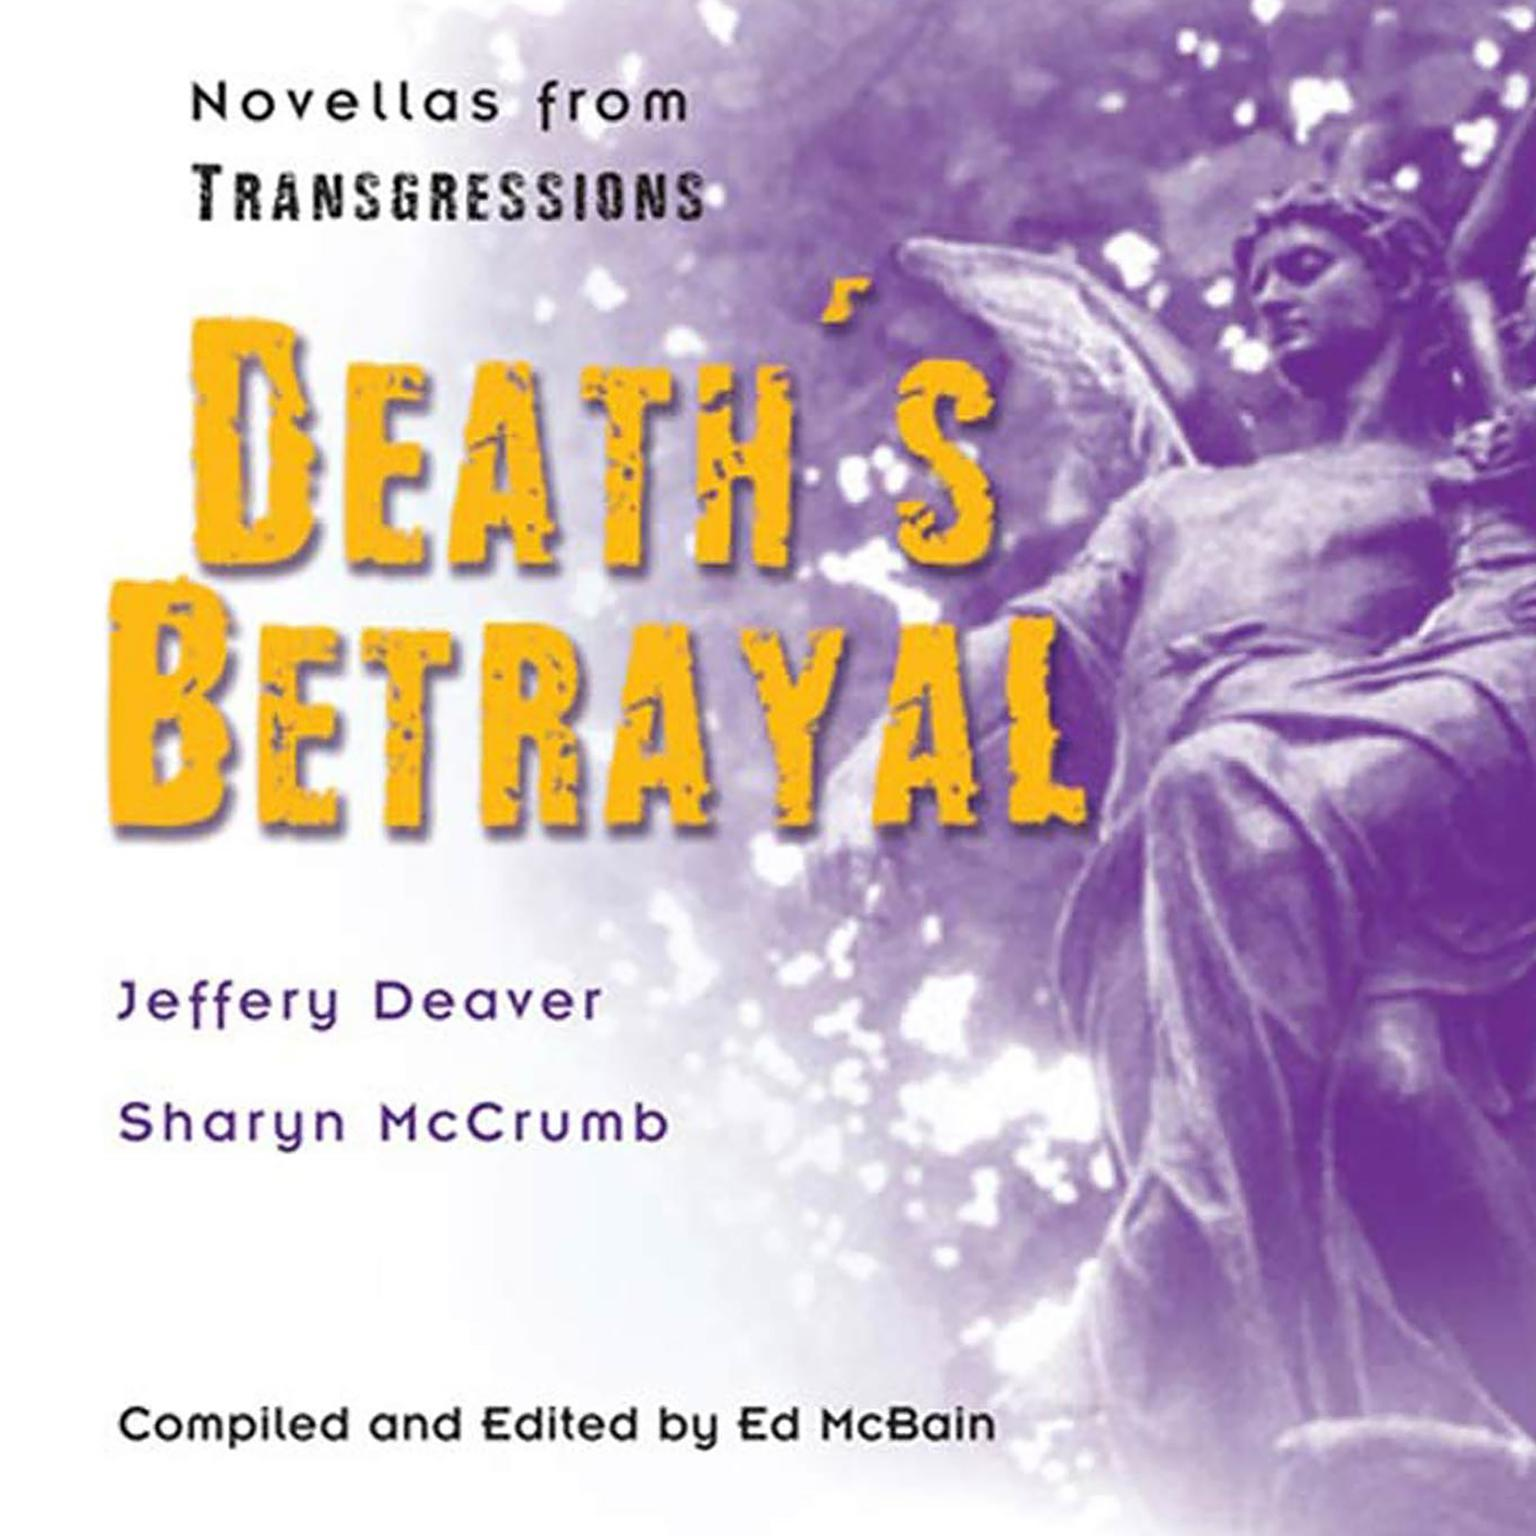 Printable Transgressions: Death's Betrayal: Two Novellas from Transgressions Audiobook Cover Art